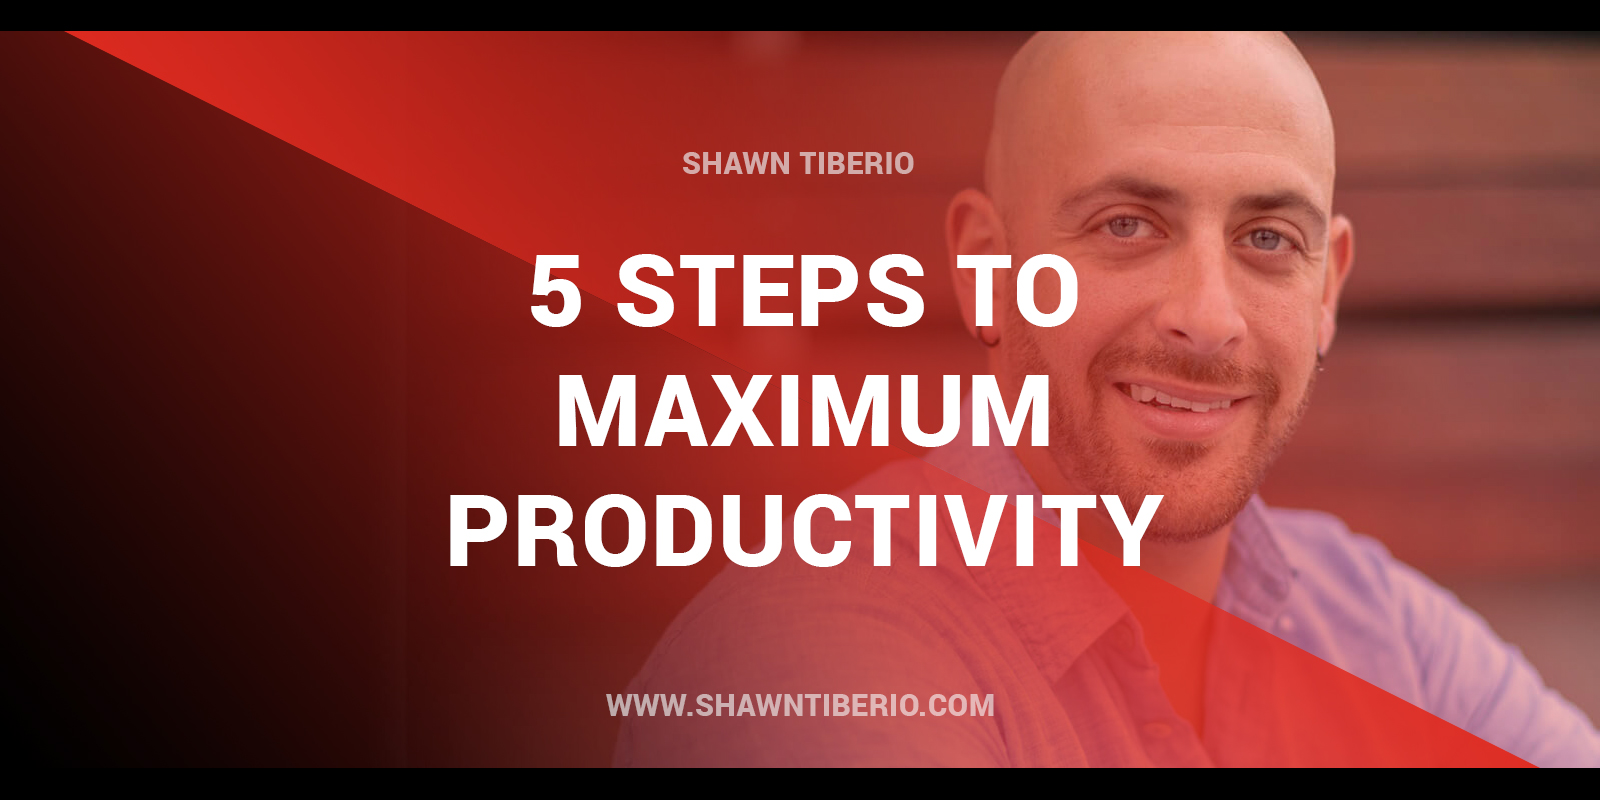 5 Steps To Maximum Productivity